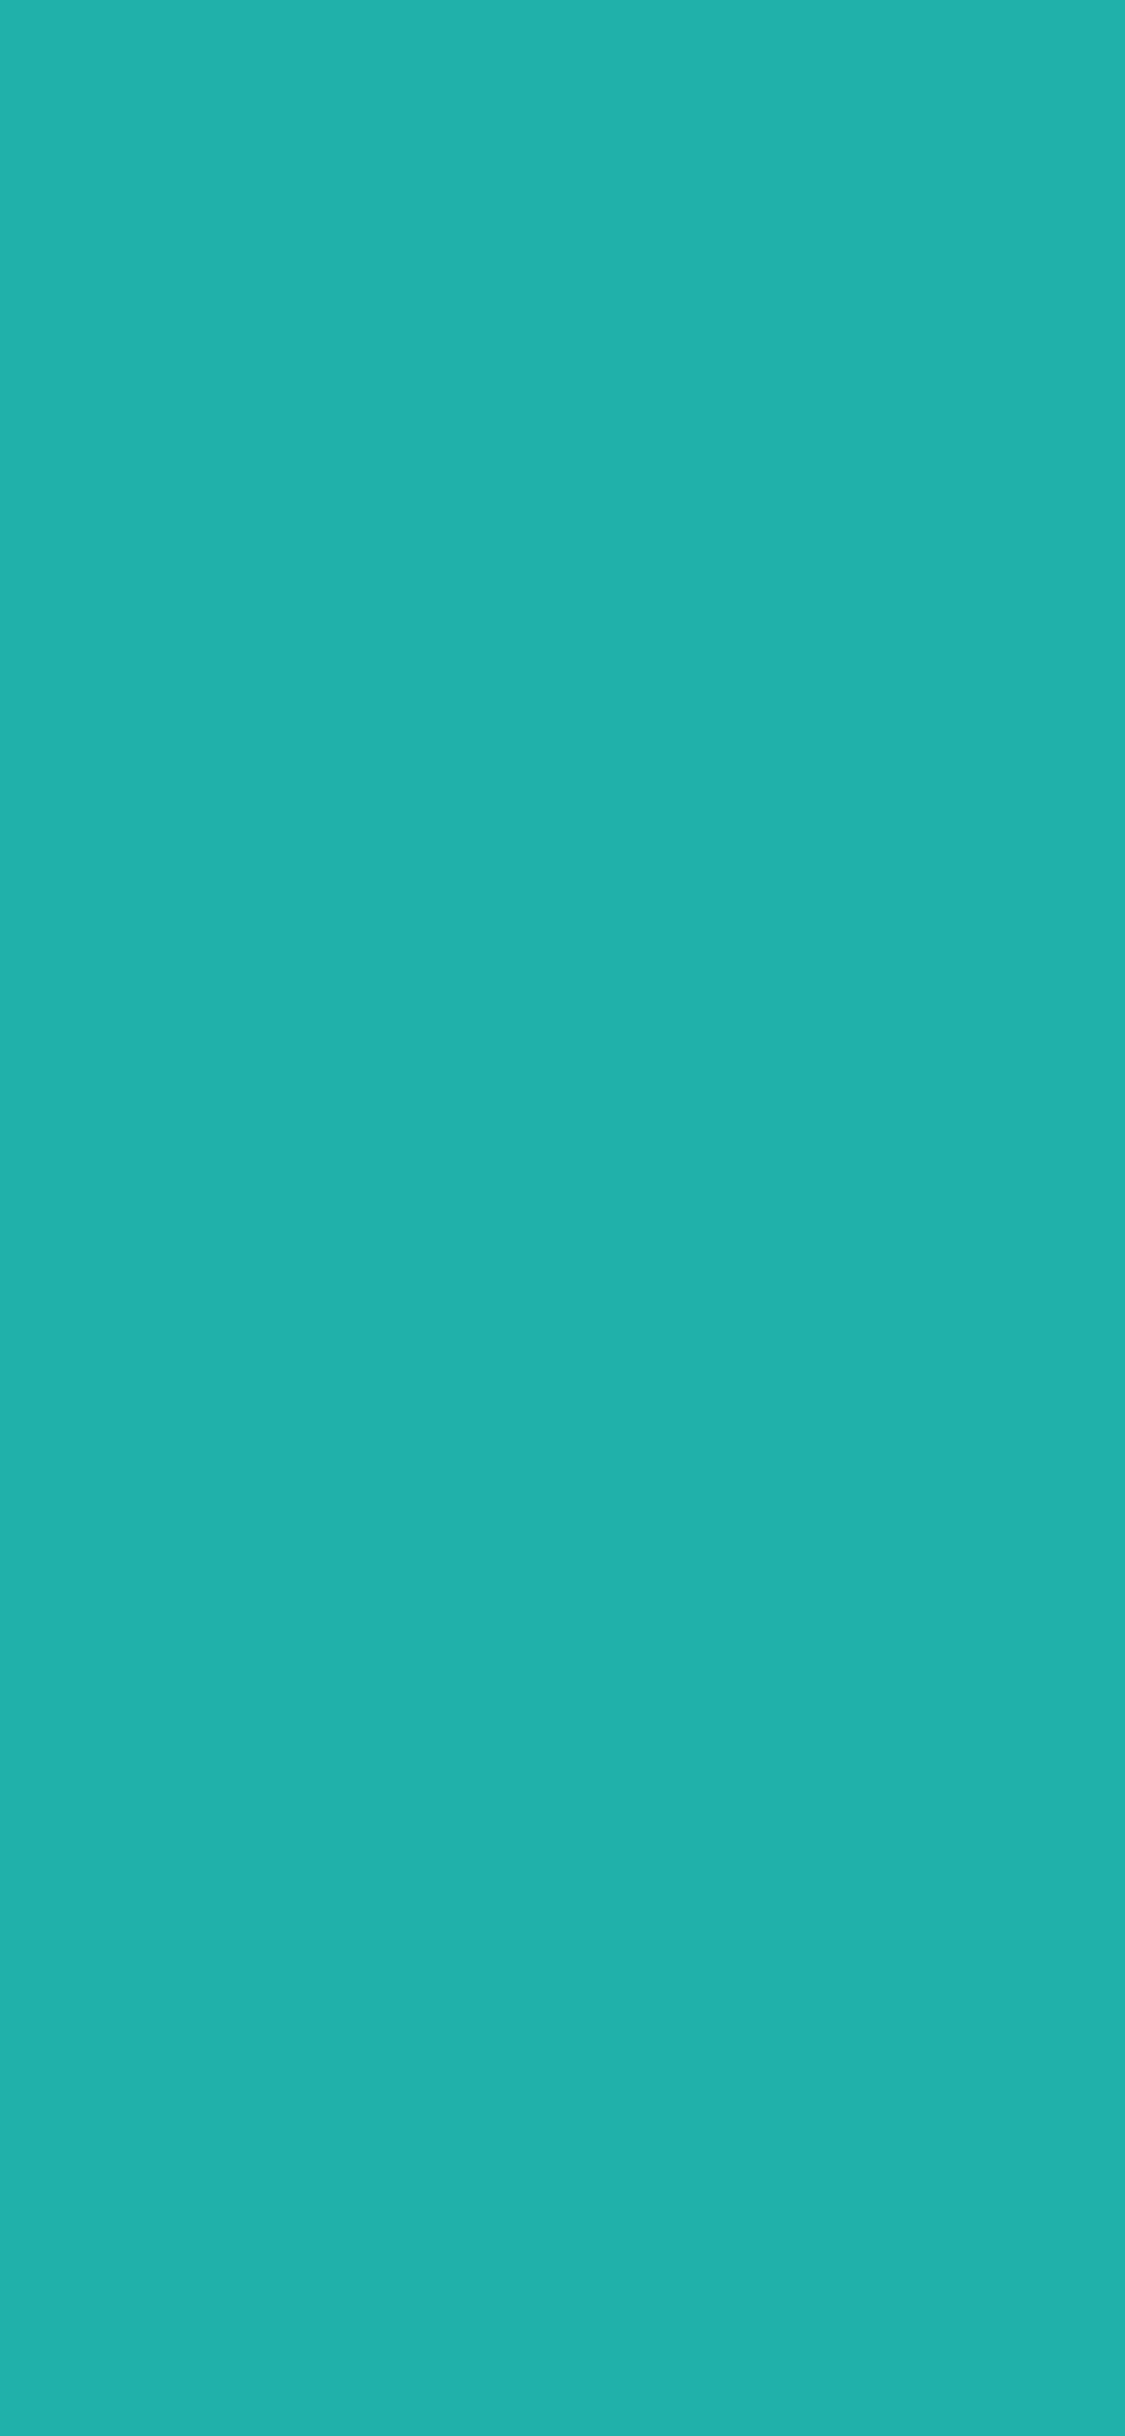 1125x2436 Light Sea Green Solid Color Background